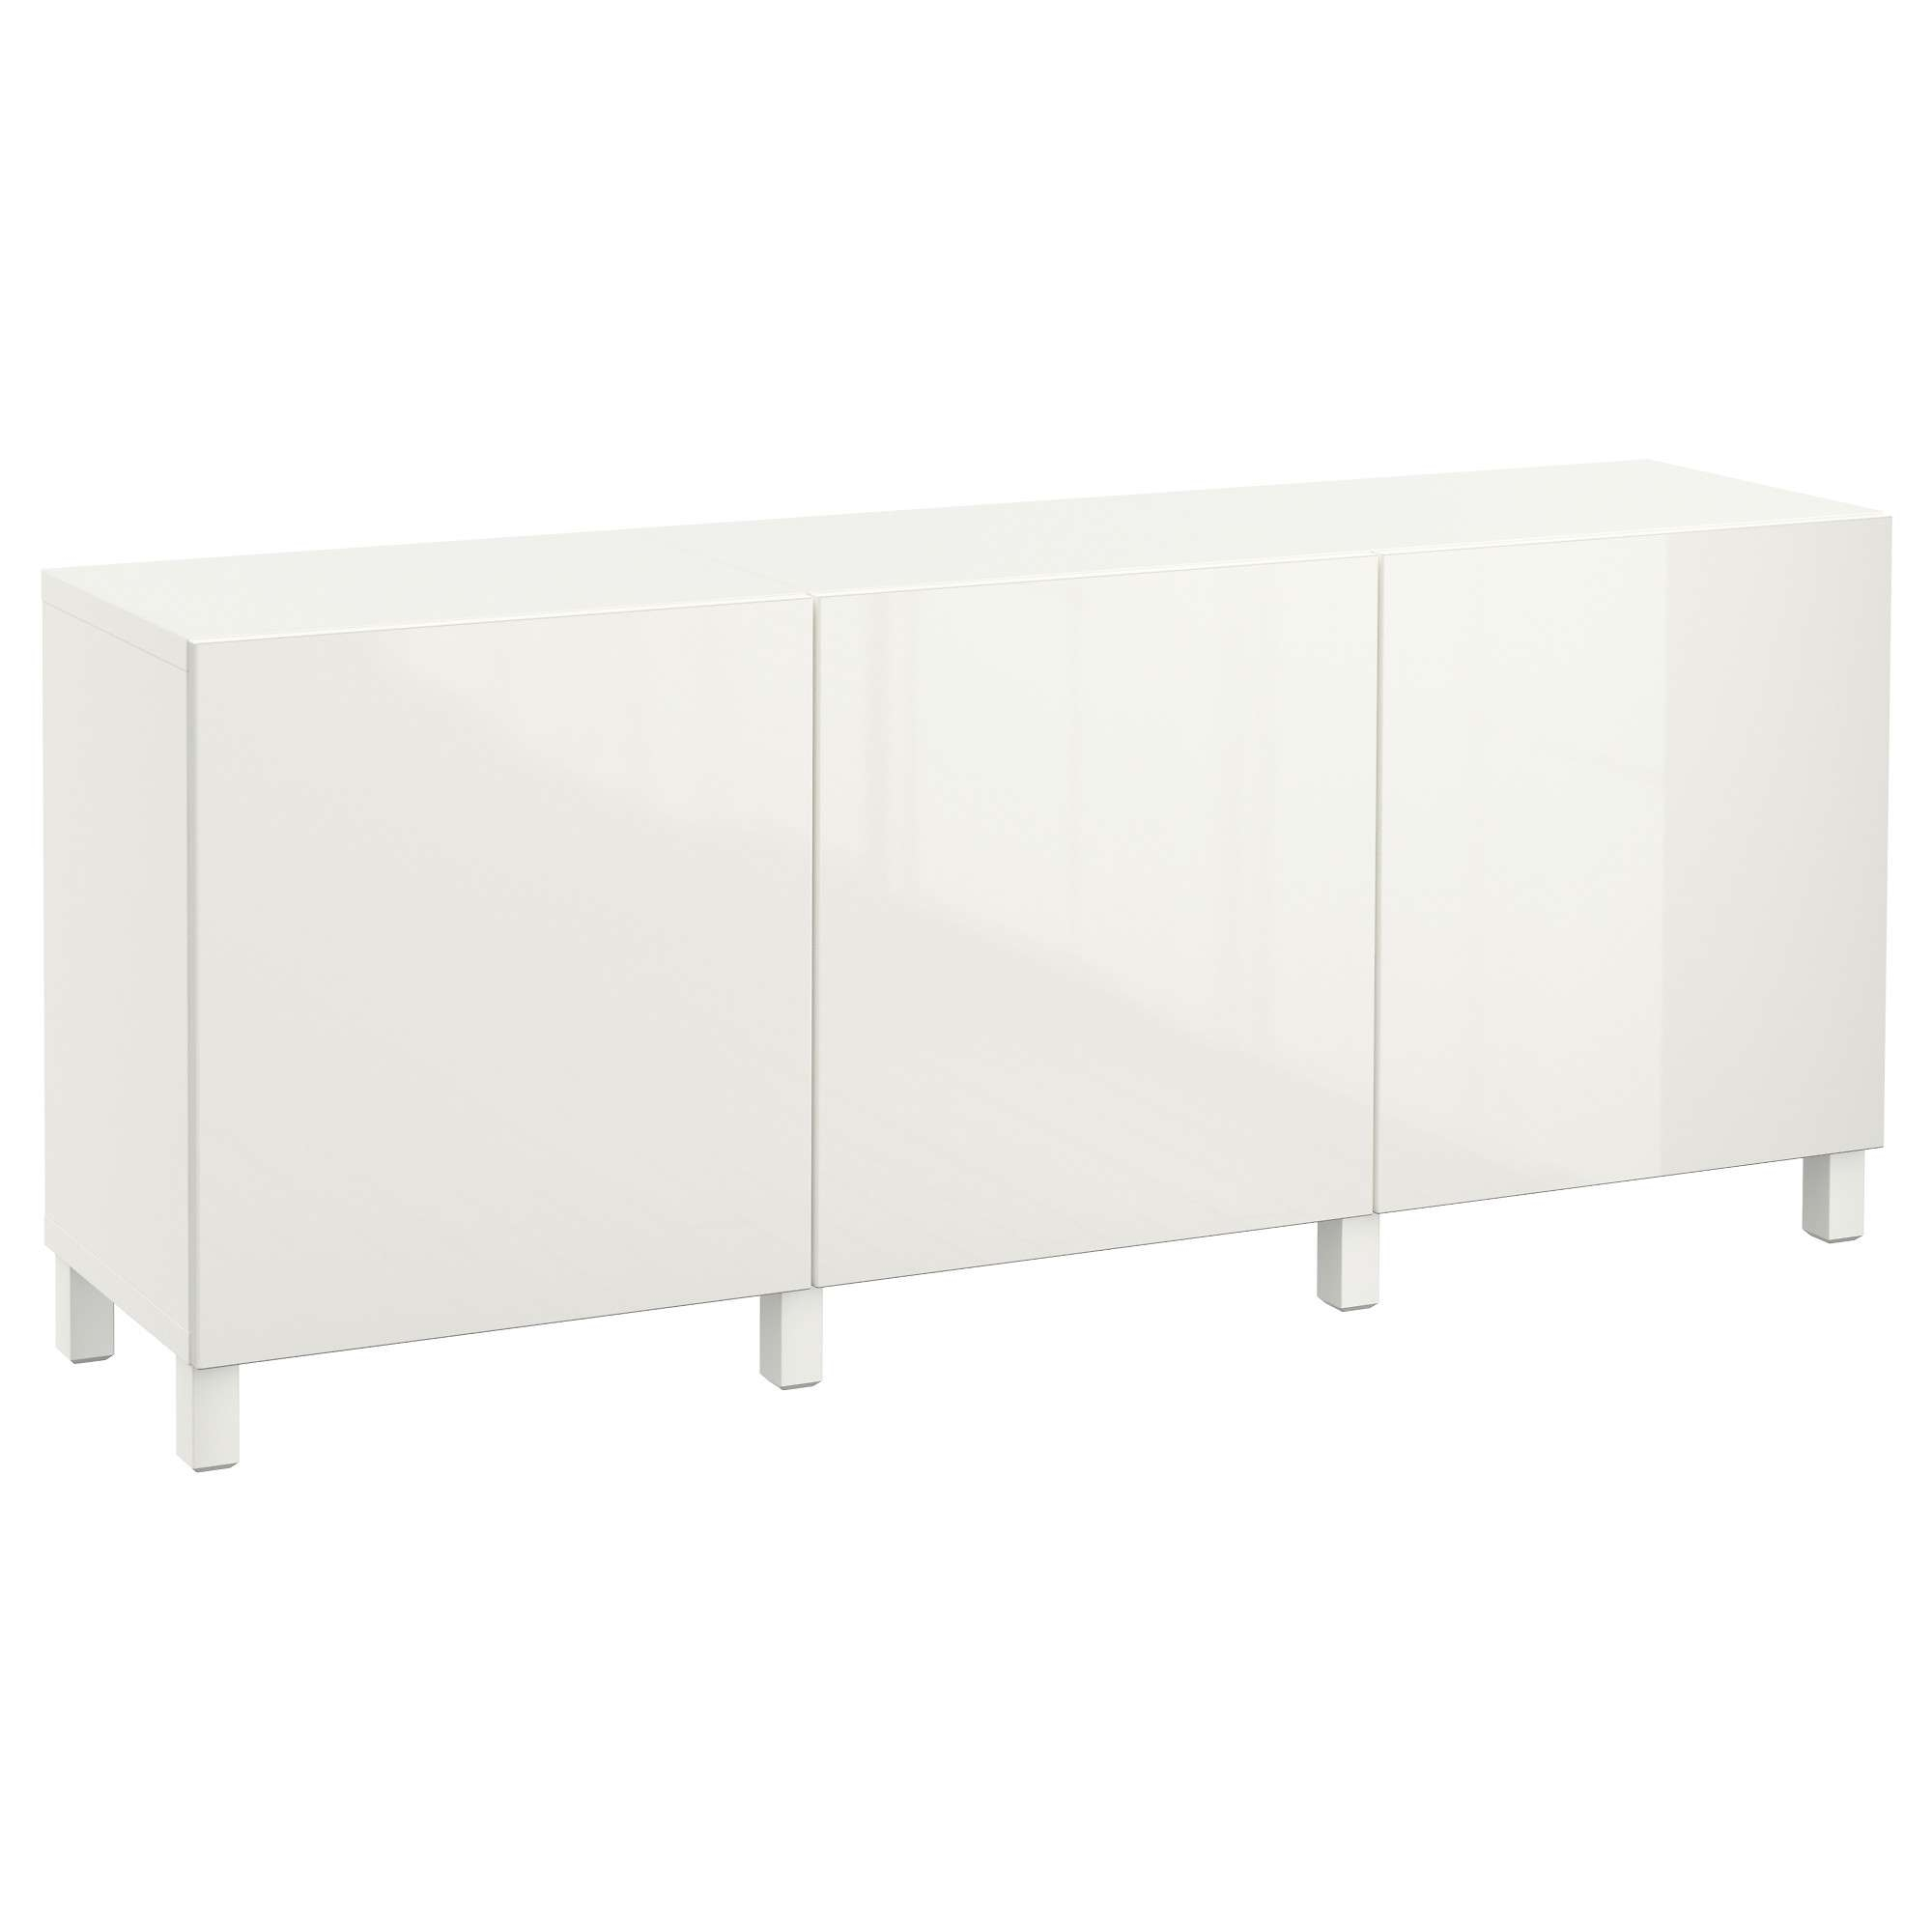 Bestå Storage Combination With Doors – White/selsviken High Gloss Within High White Gloss Sideboards (View 4 of 20)